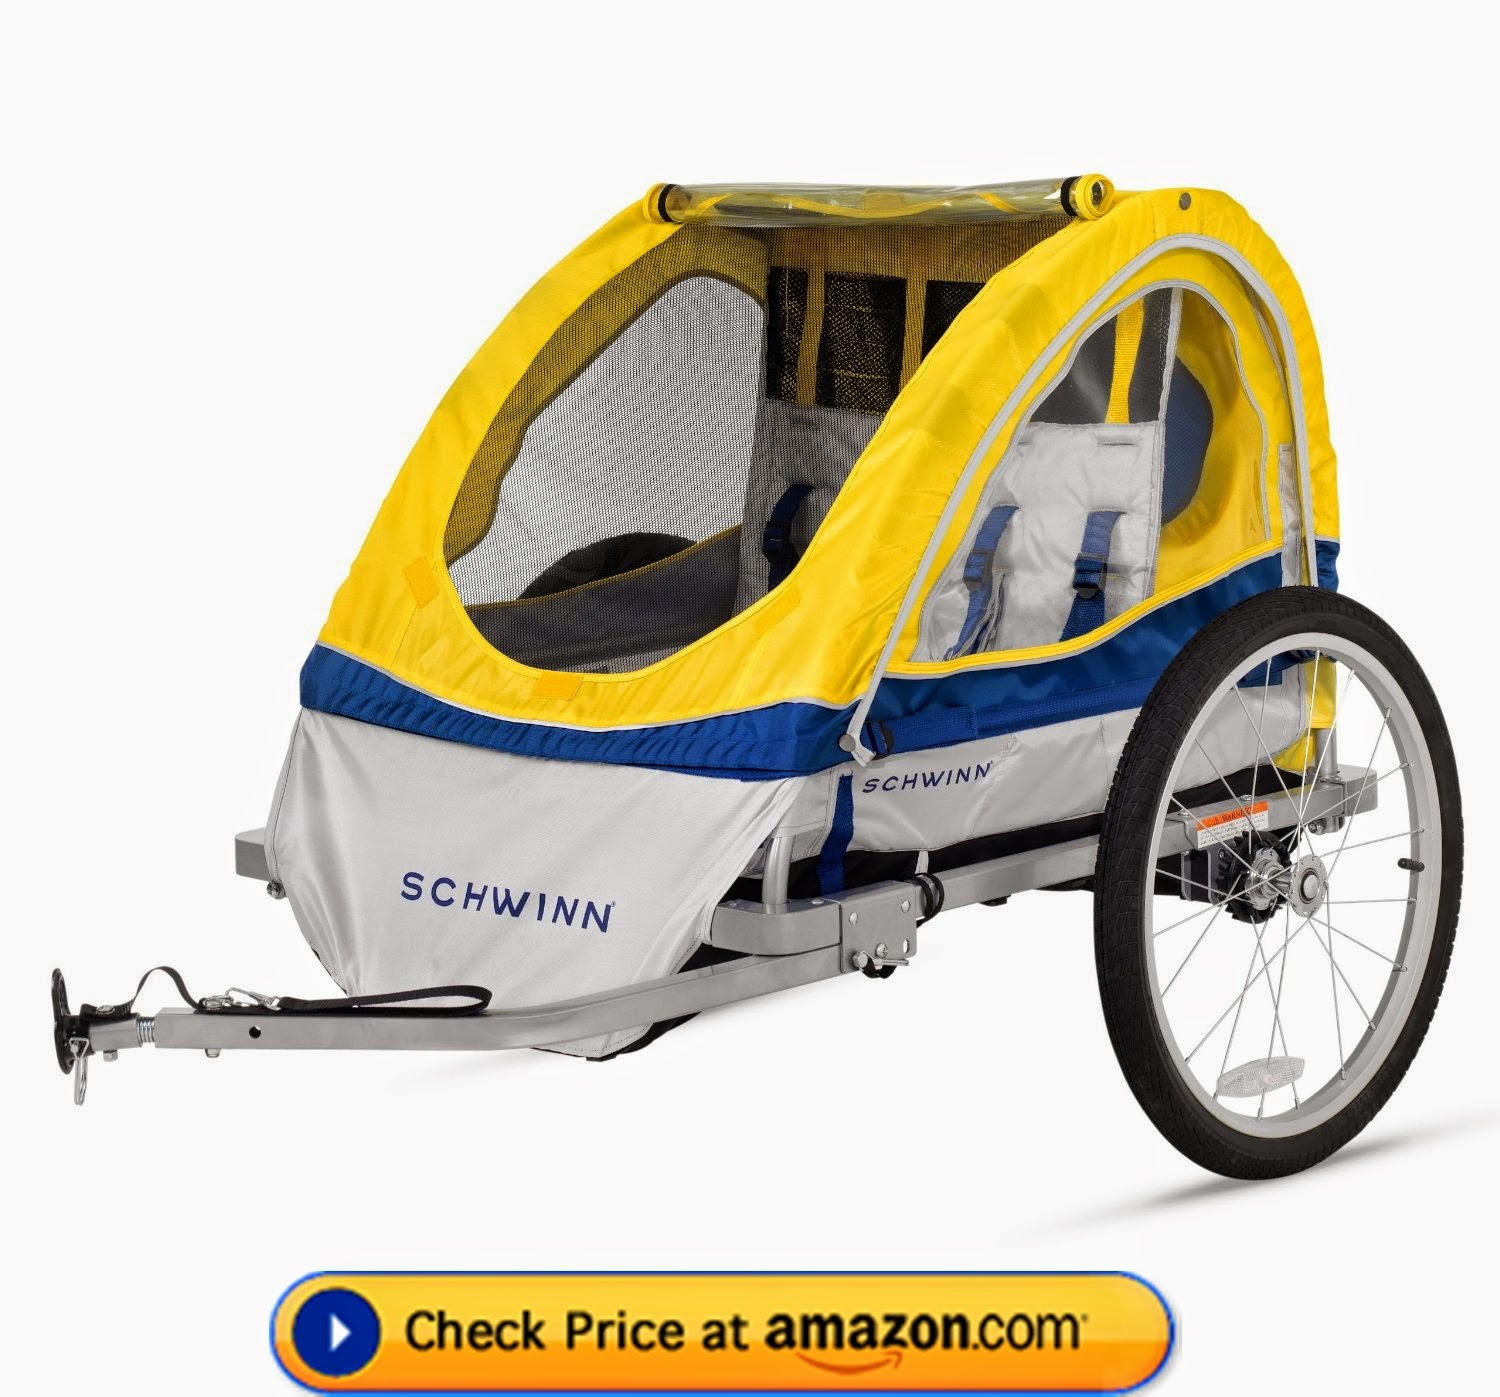 Schwinn Double Bike Trailer Reviews